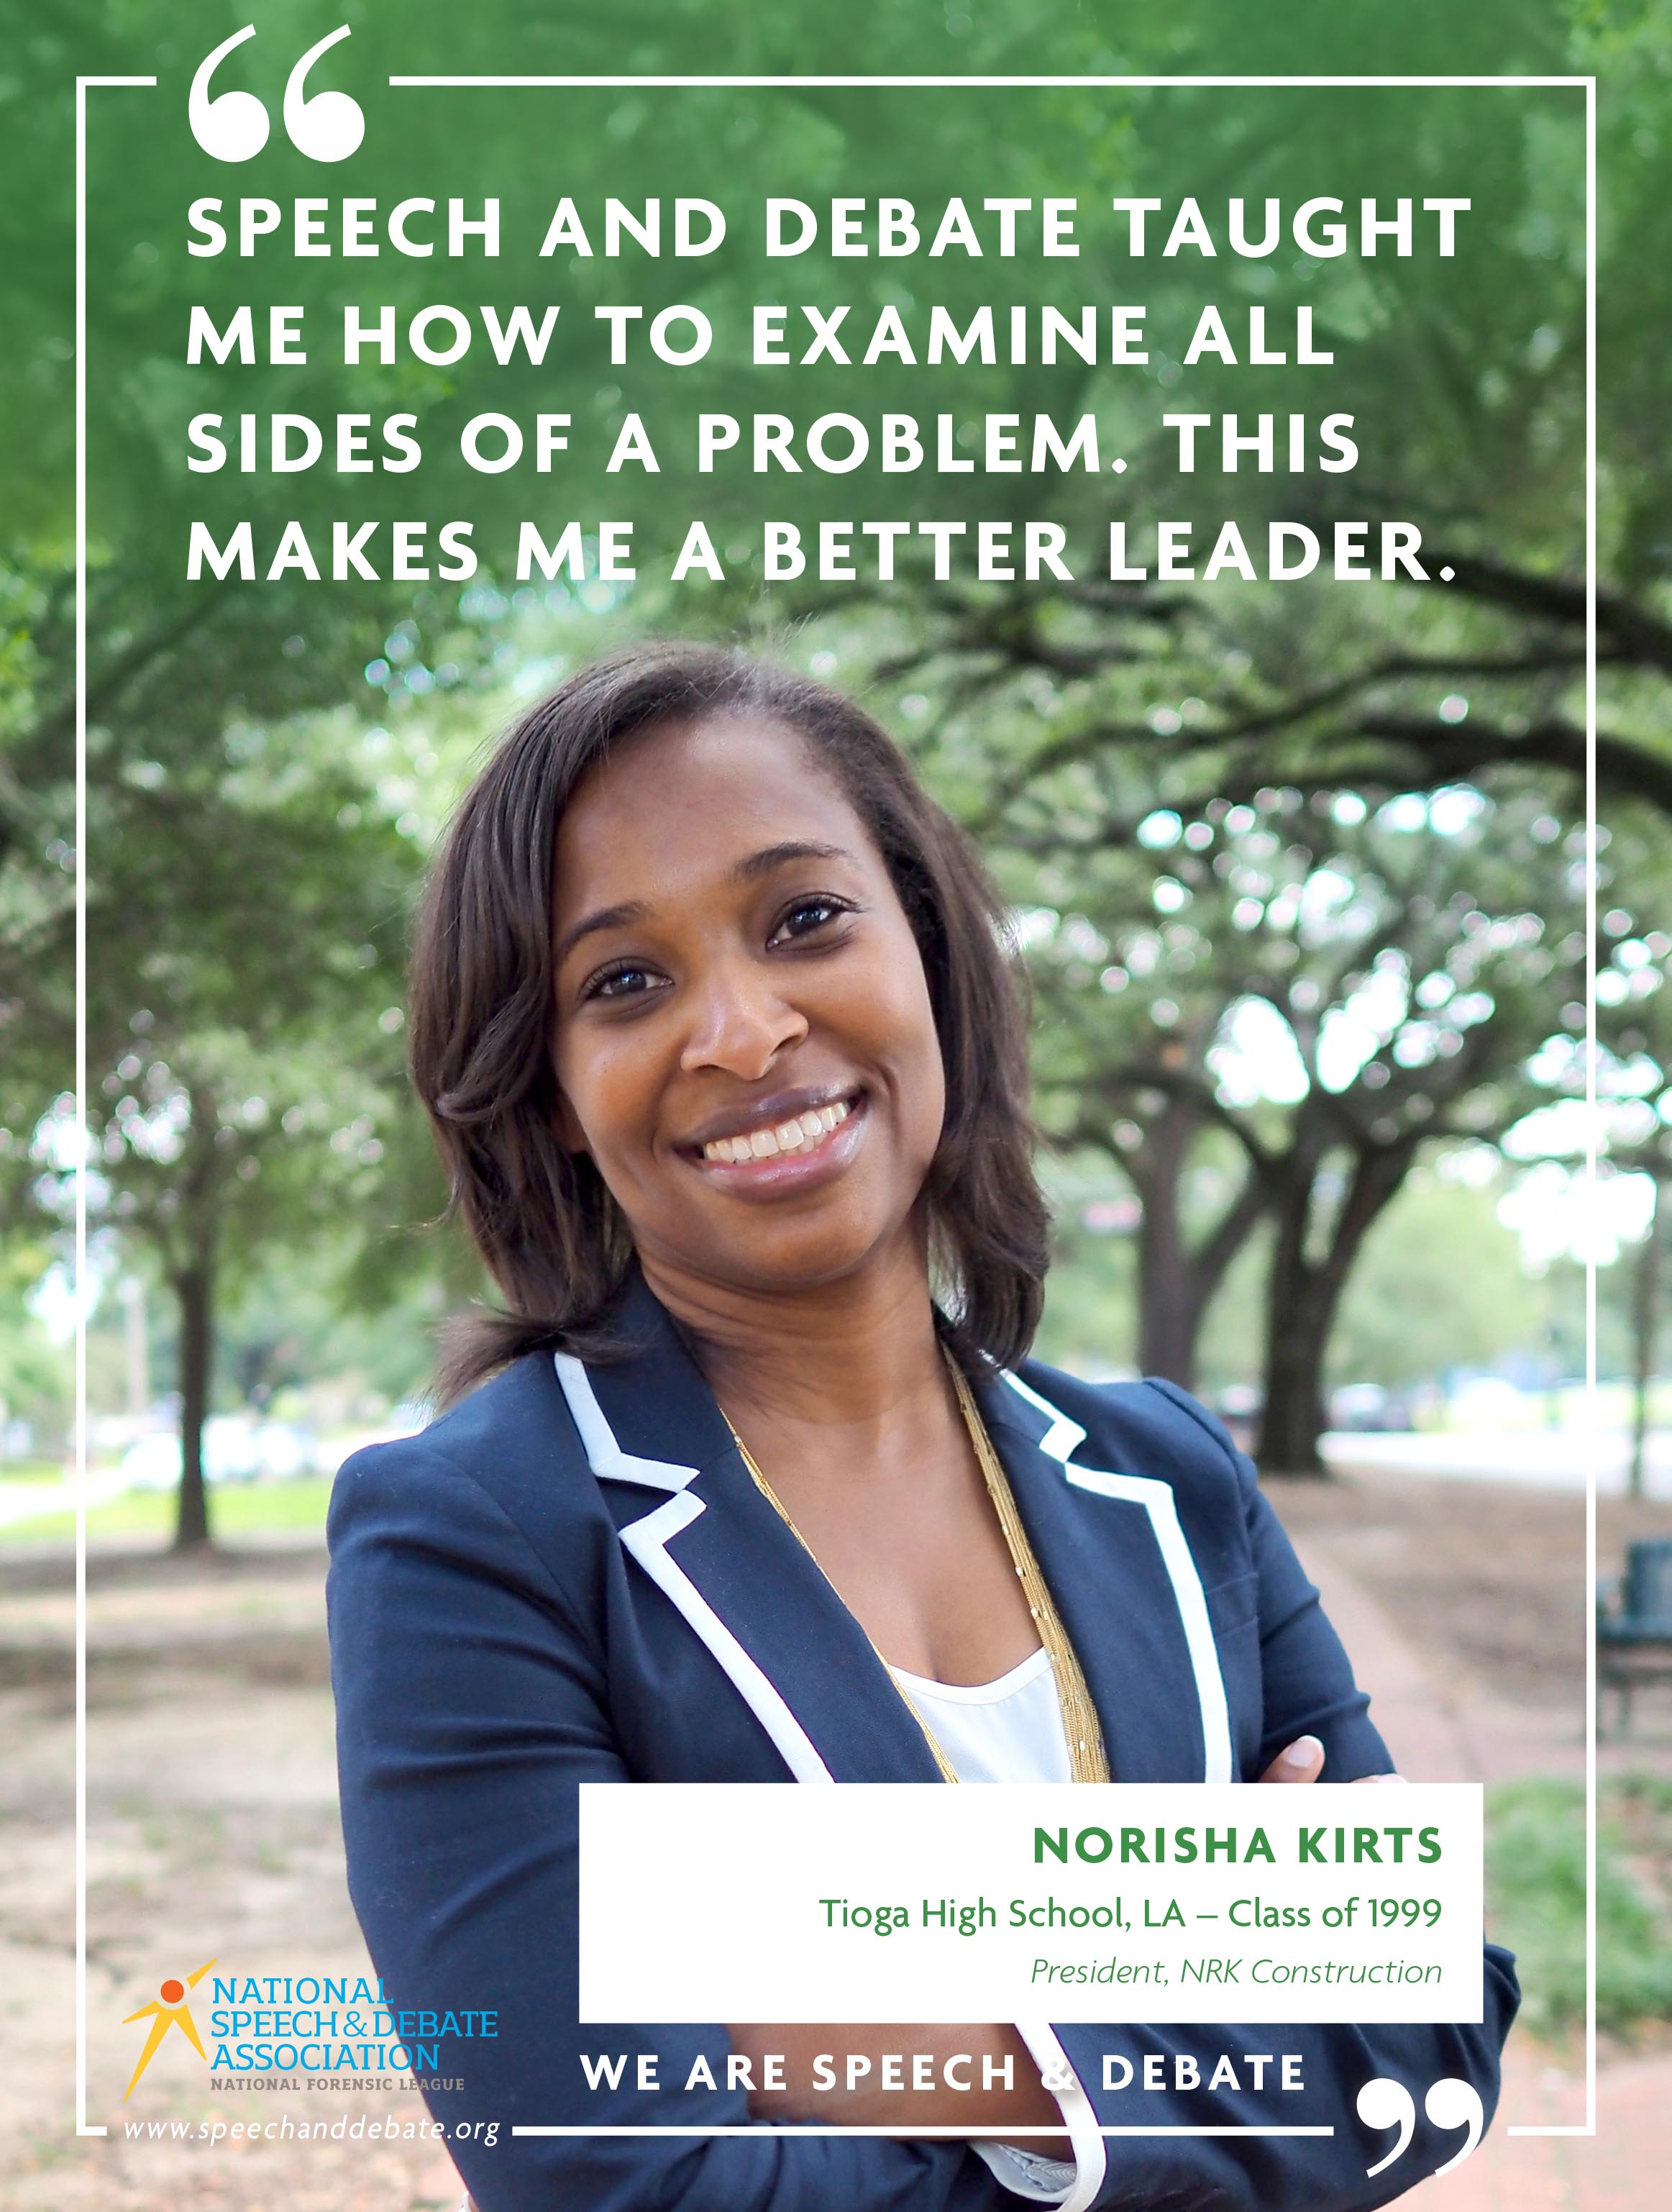 SPEECH AND DEBATE TAUGHT ME HOW TO EXAMINE ALL SIDES OF A PROBLEM. THIS MAKES ME A BETTER LEADER. - Norisha Kirts